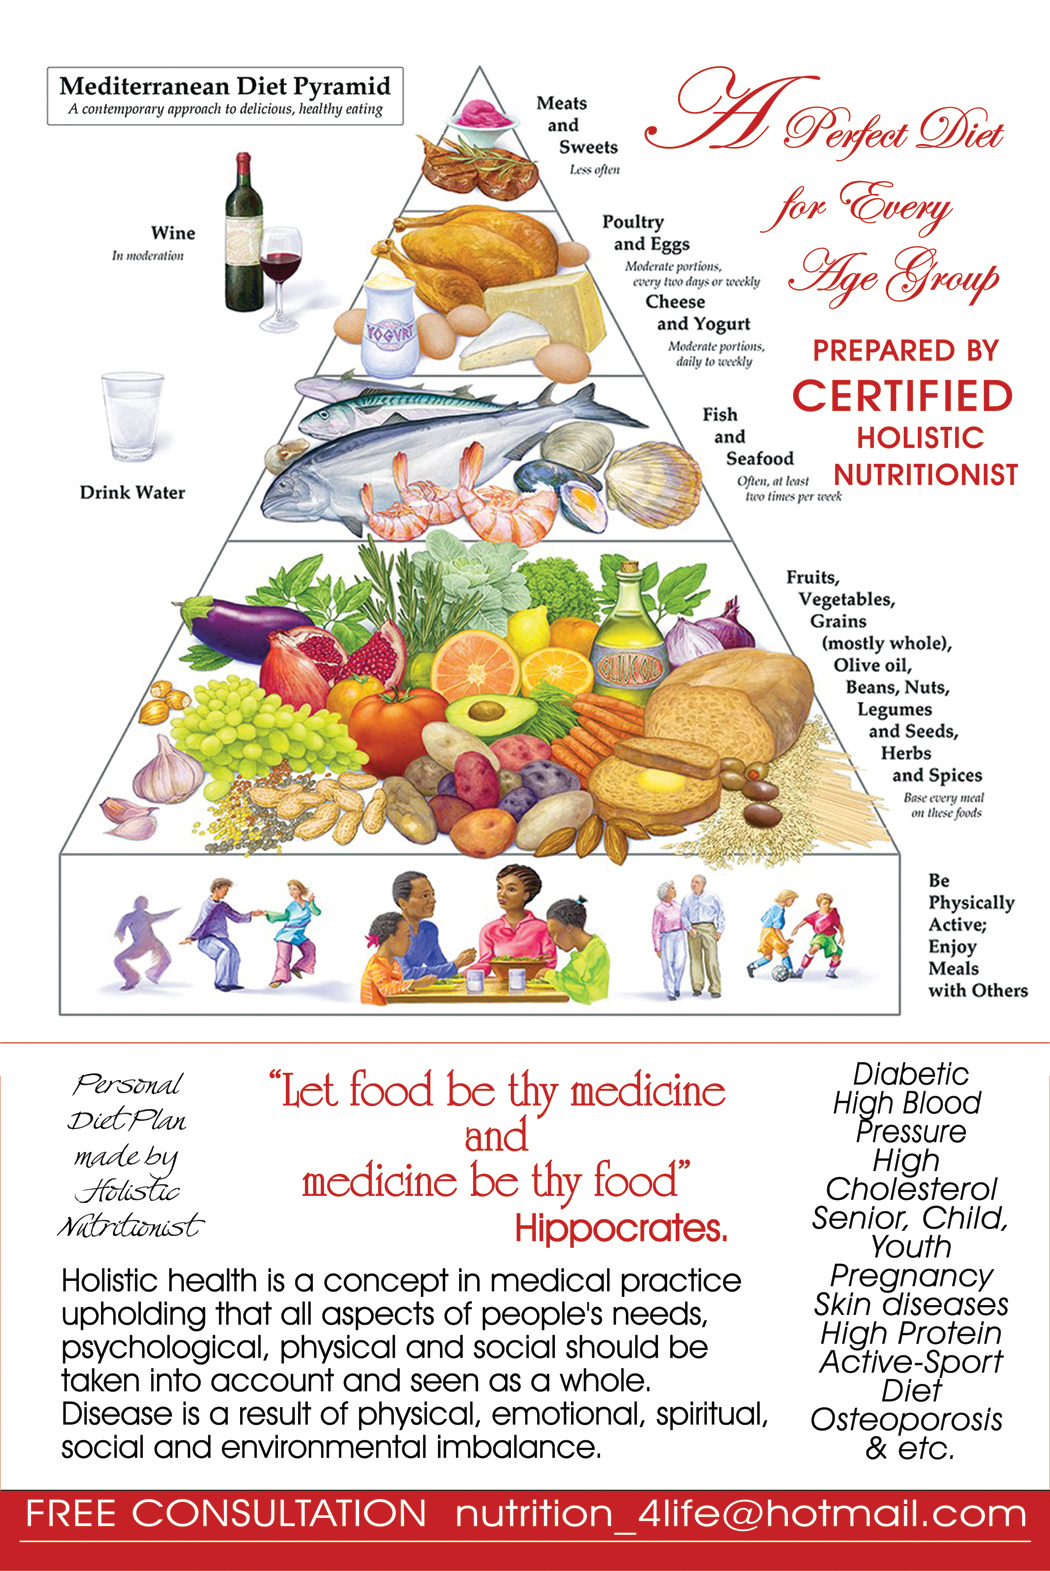 Forum on this topic: Best patient diet food for Psoriasis sufferers, best-patient-diet-food-for-psoriasis-sufferers/